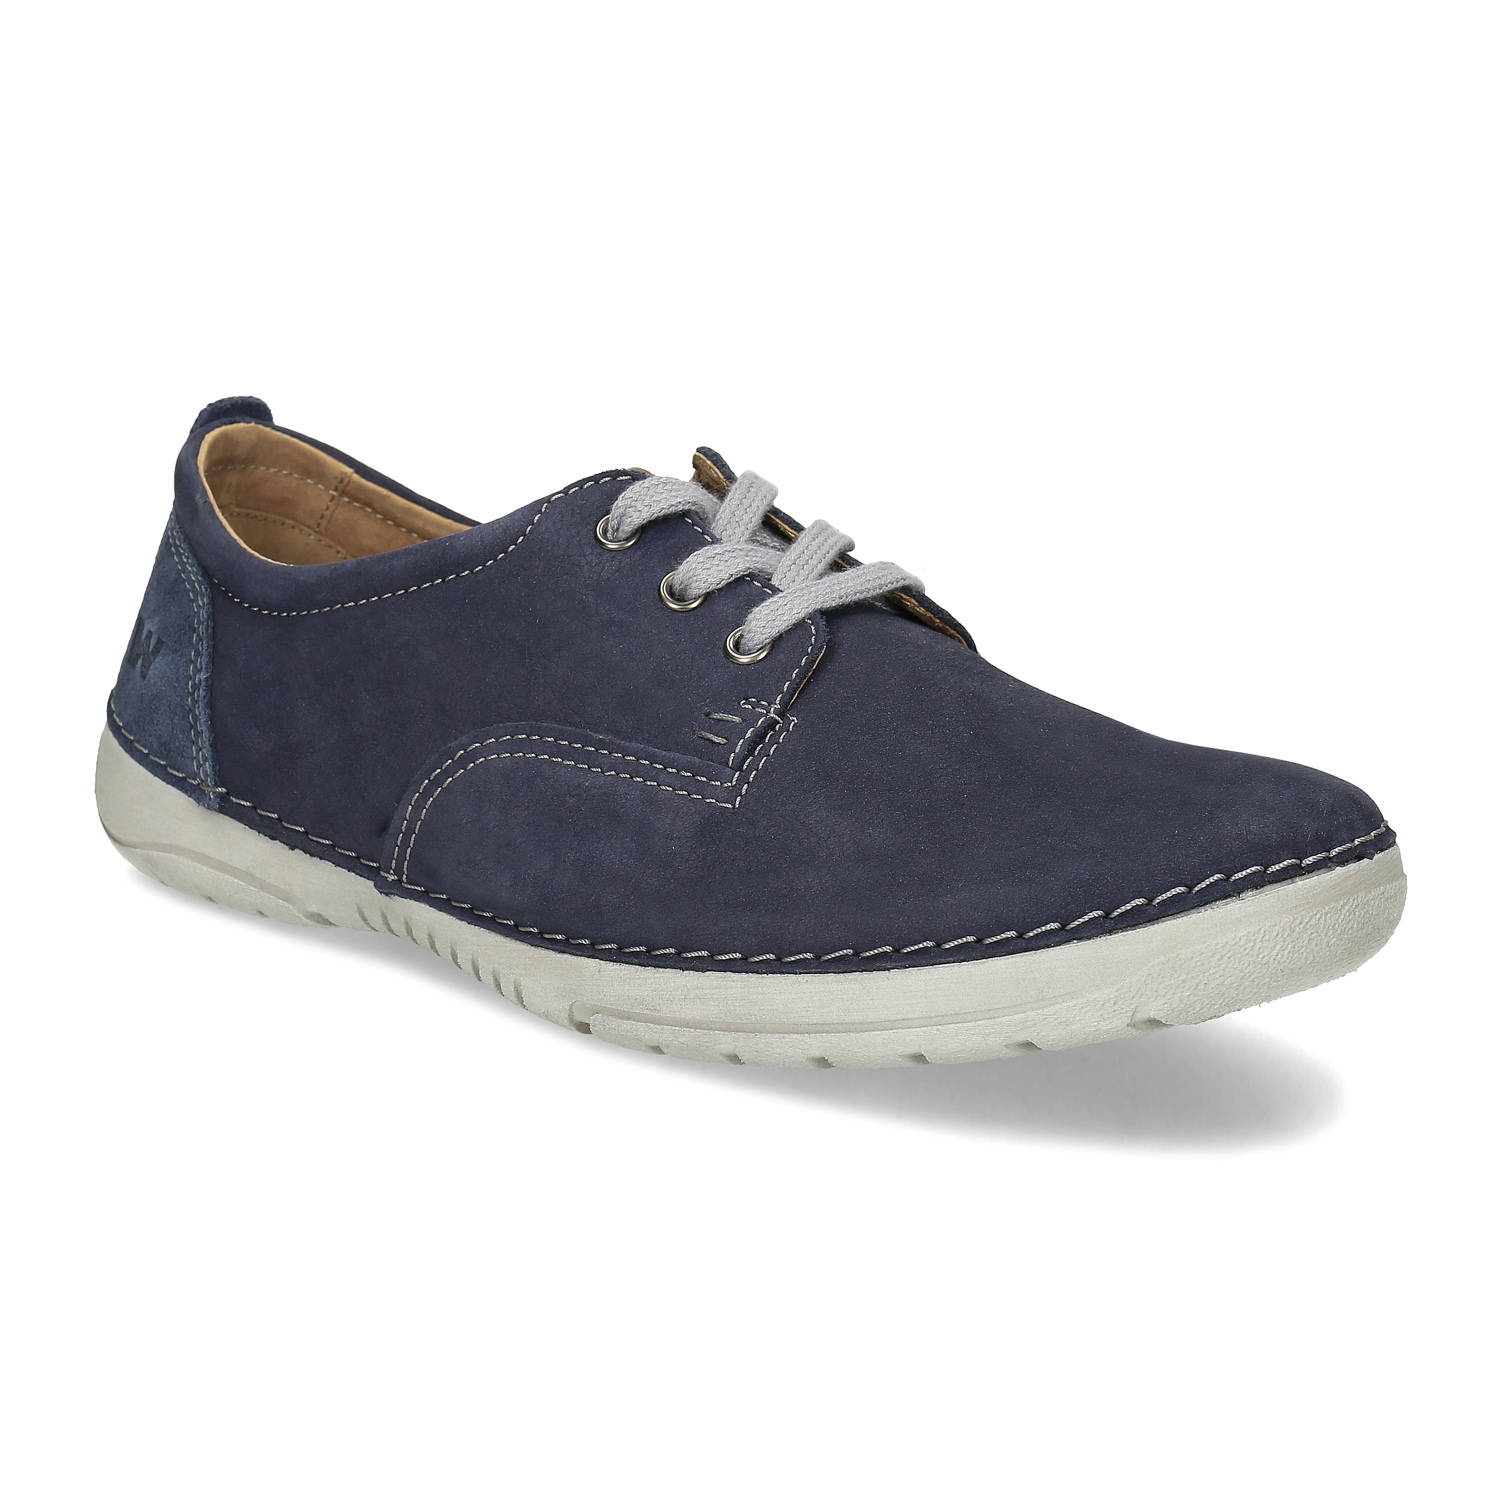 Weinbrenner Casual leather shoes